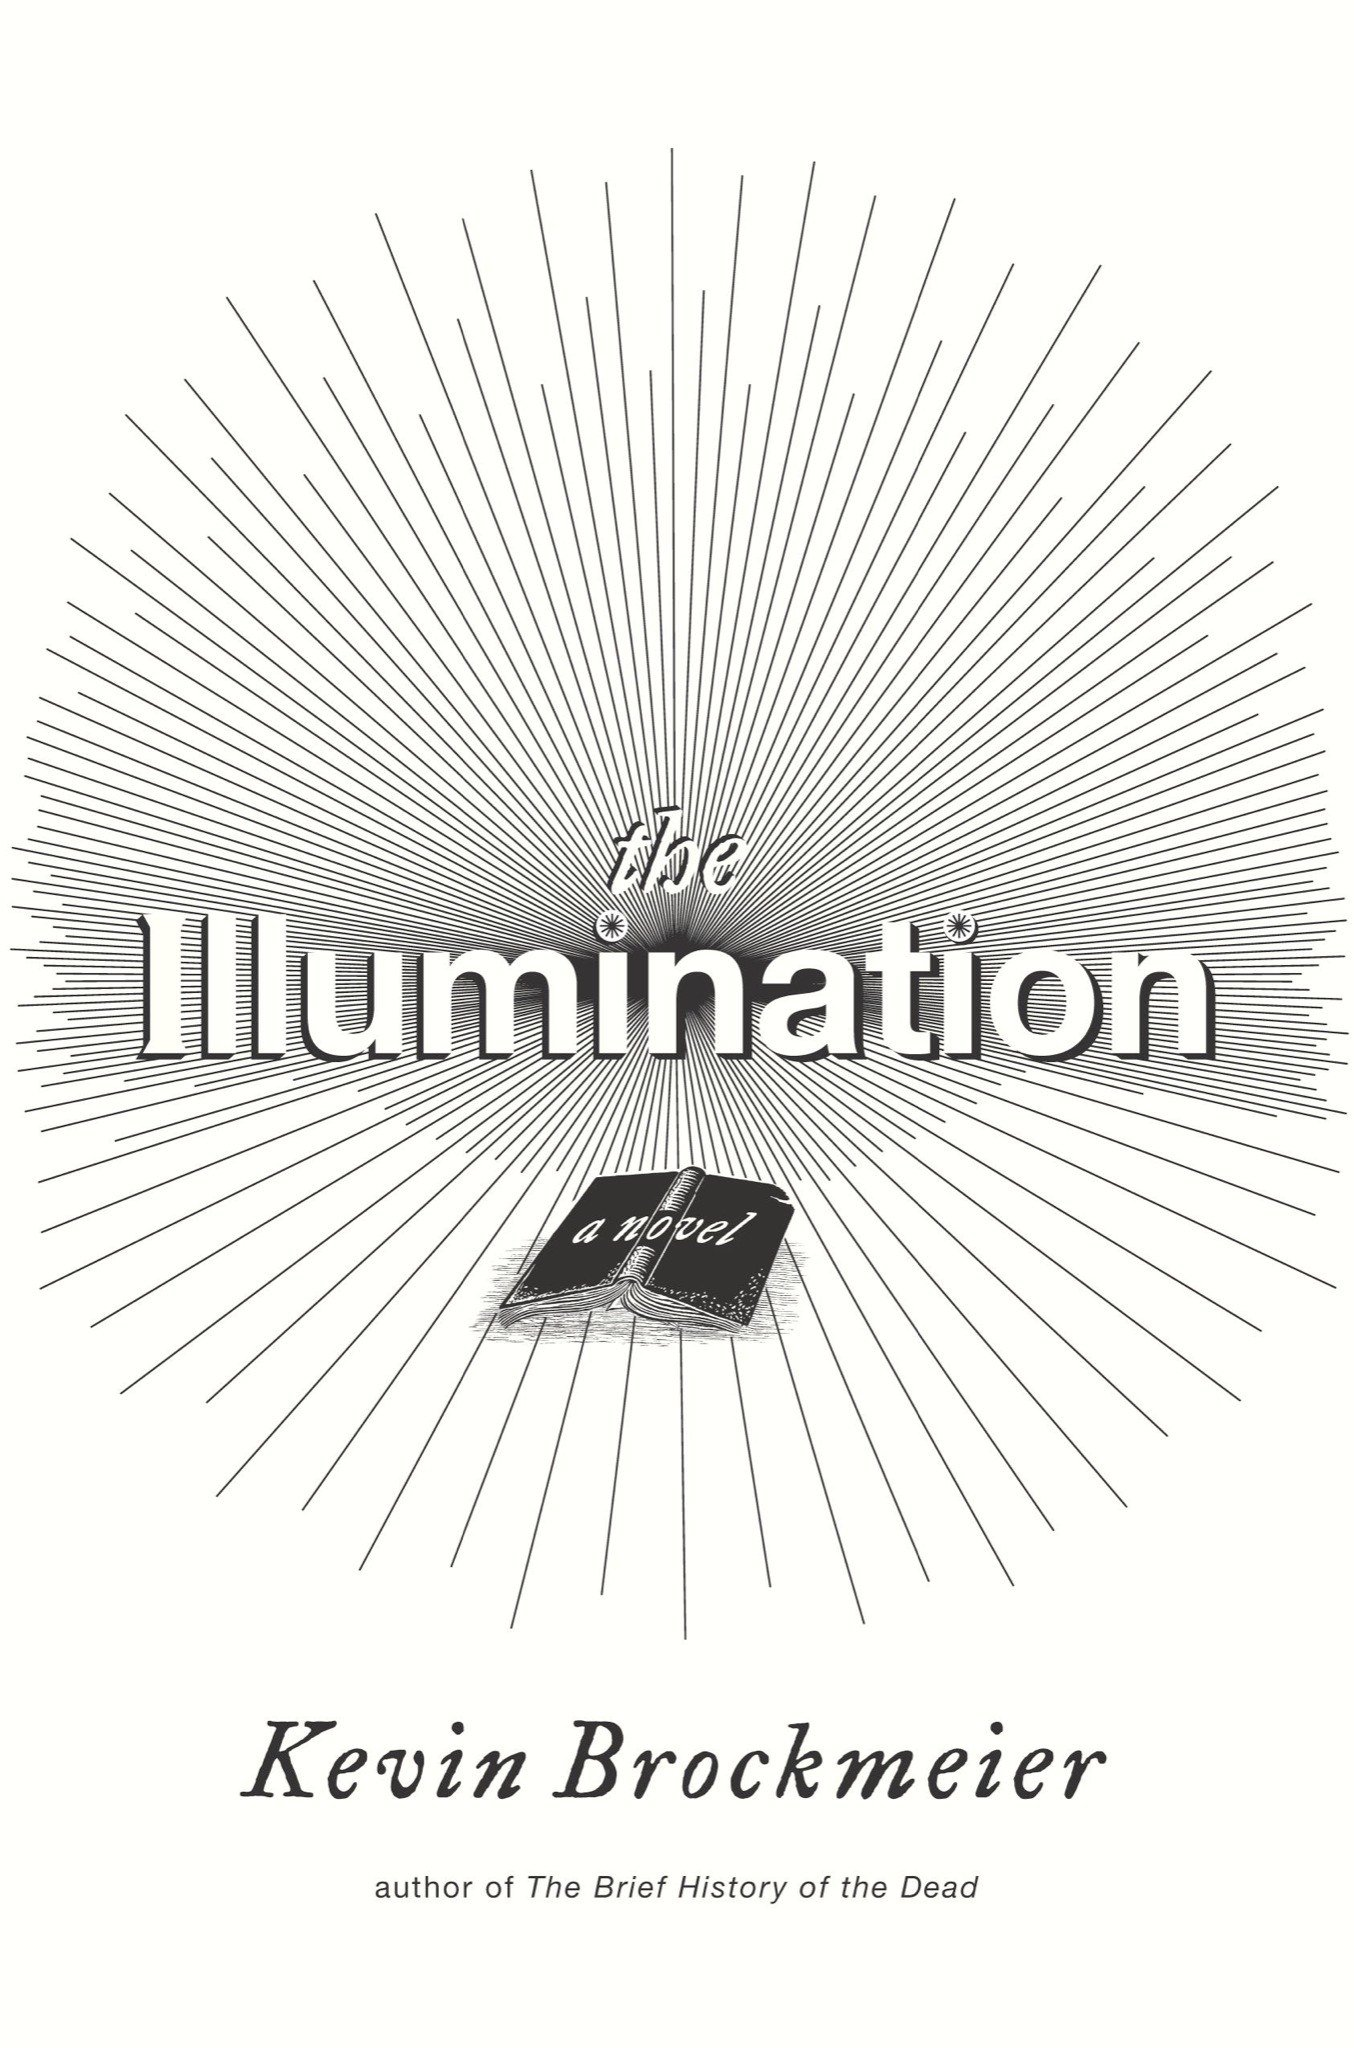 Shedding Little Light: Kevin Brockmeier's The Illumination